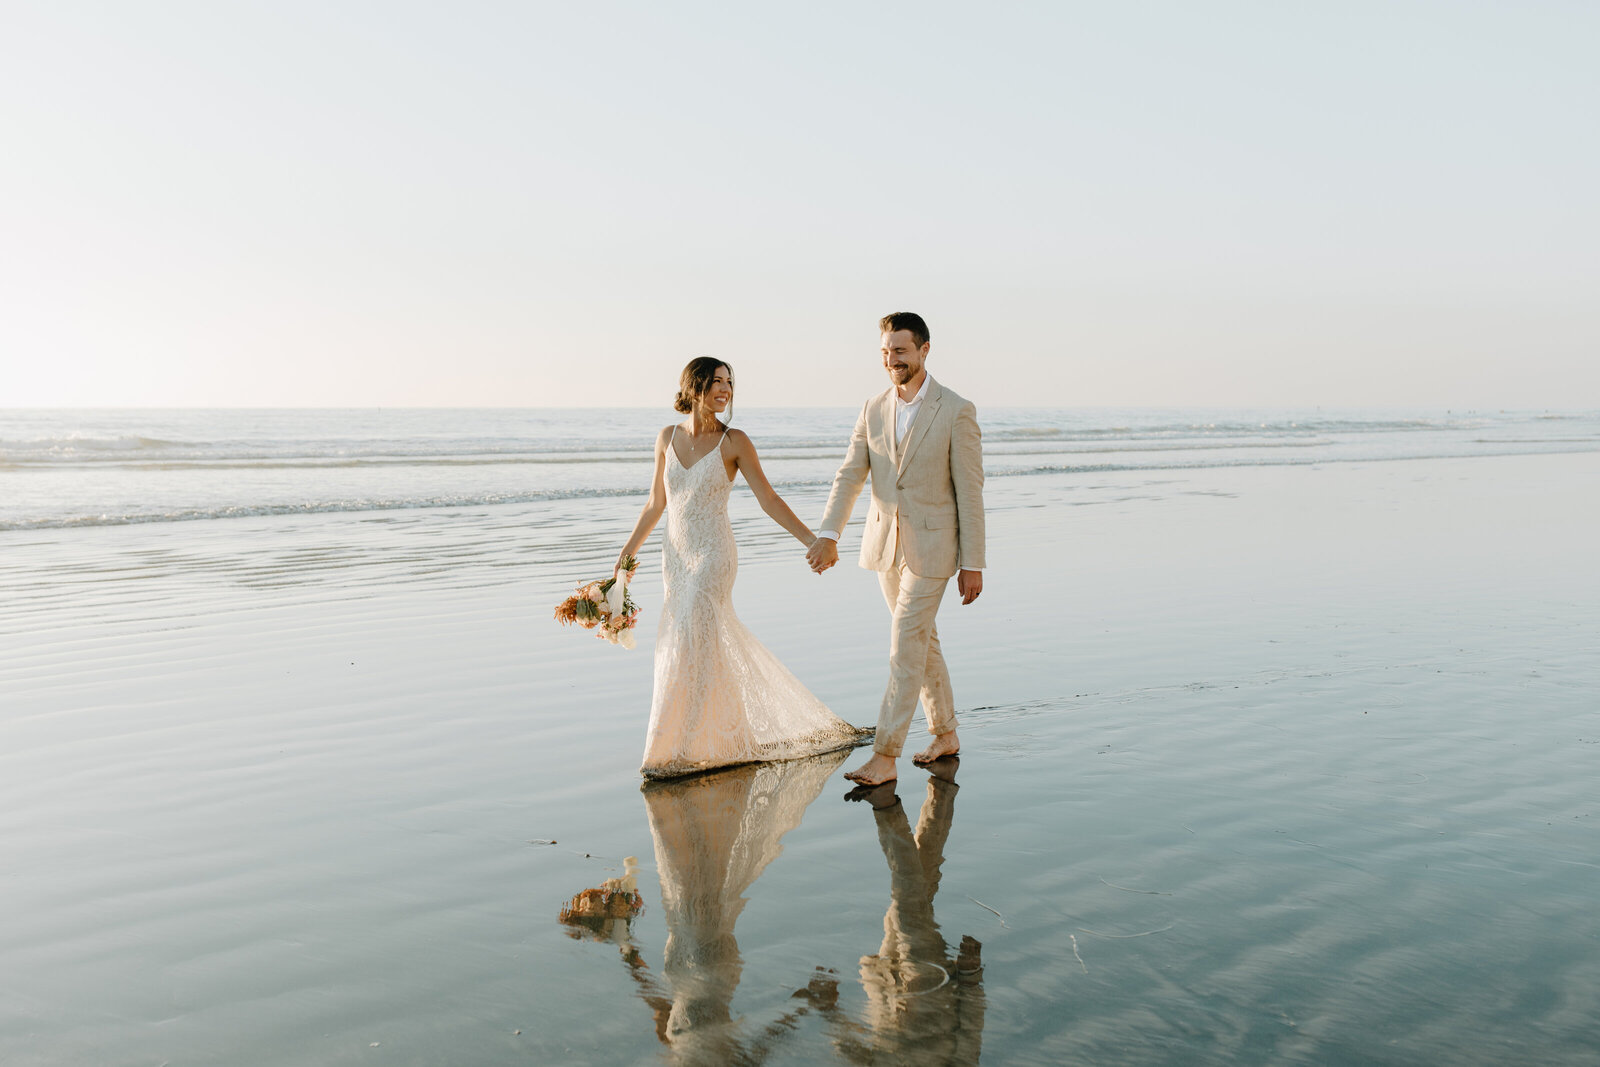 Jordyn & Brian - San Diego Elopement - Tess Laureen Photography @tesslaureen - 267